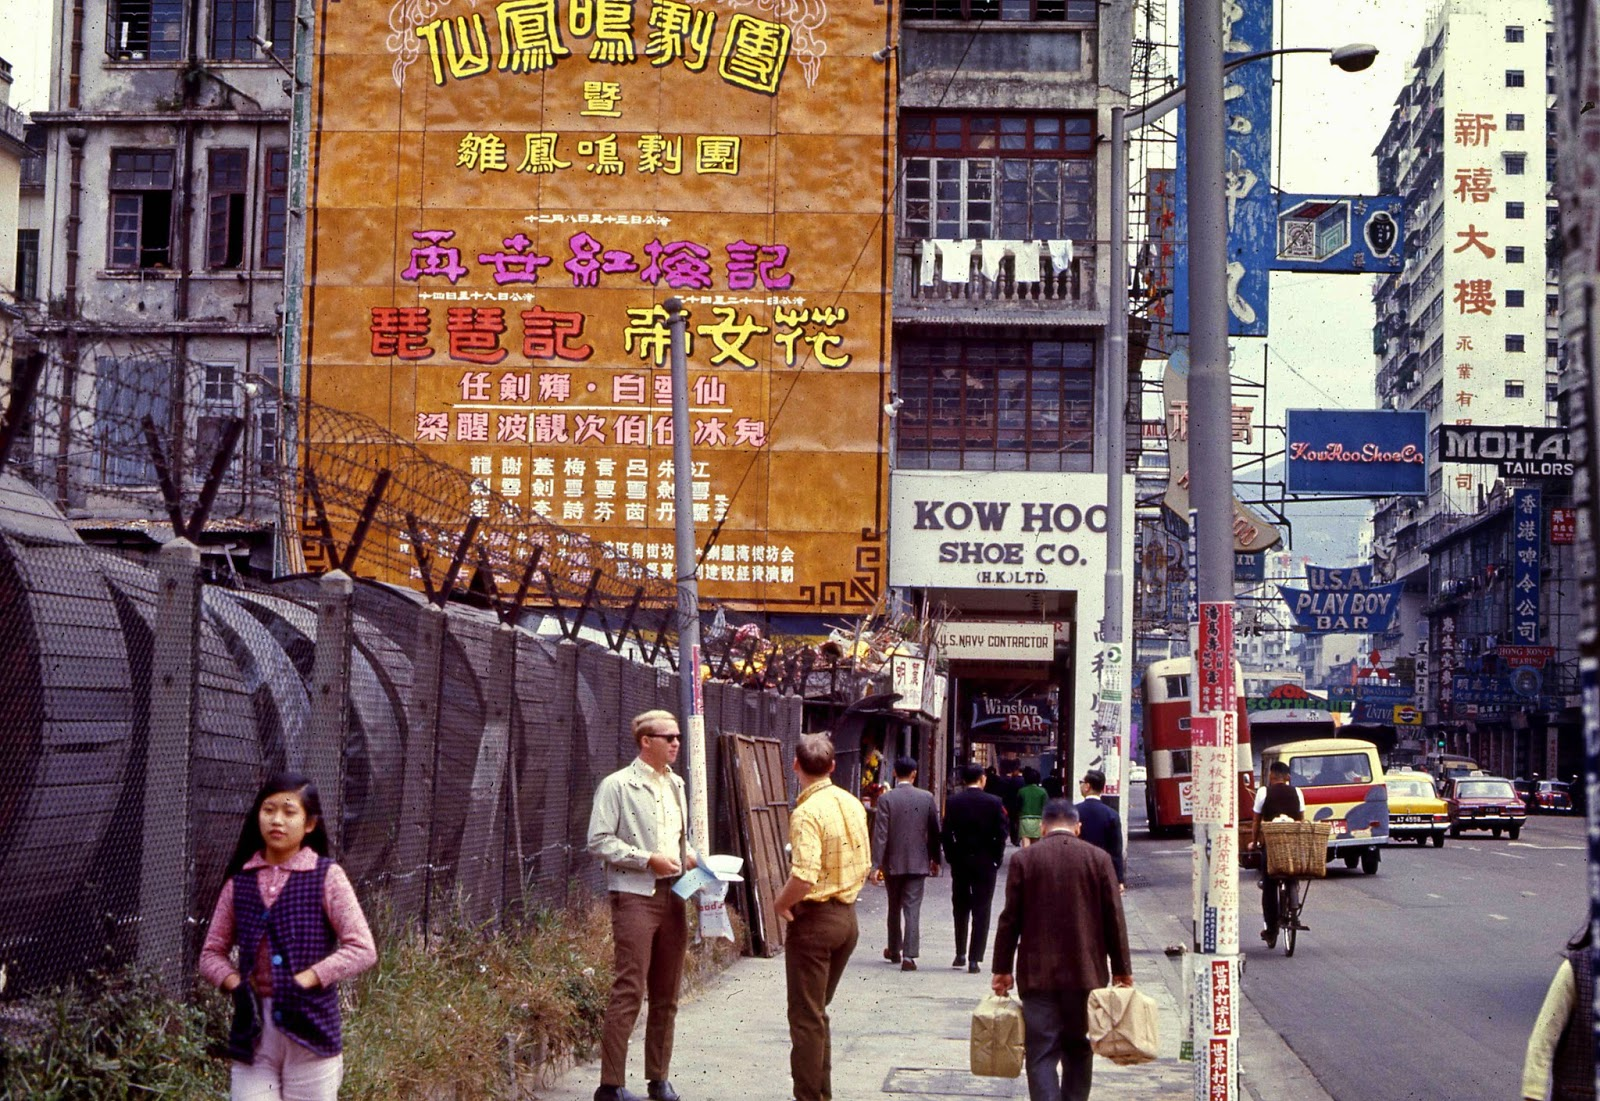 Hong Kong Kow Hoo Shoe Co.1969